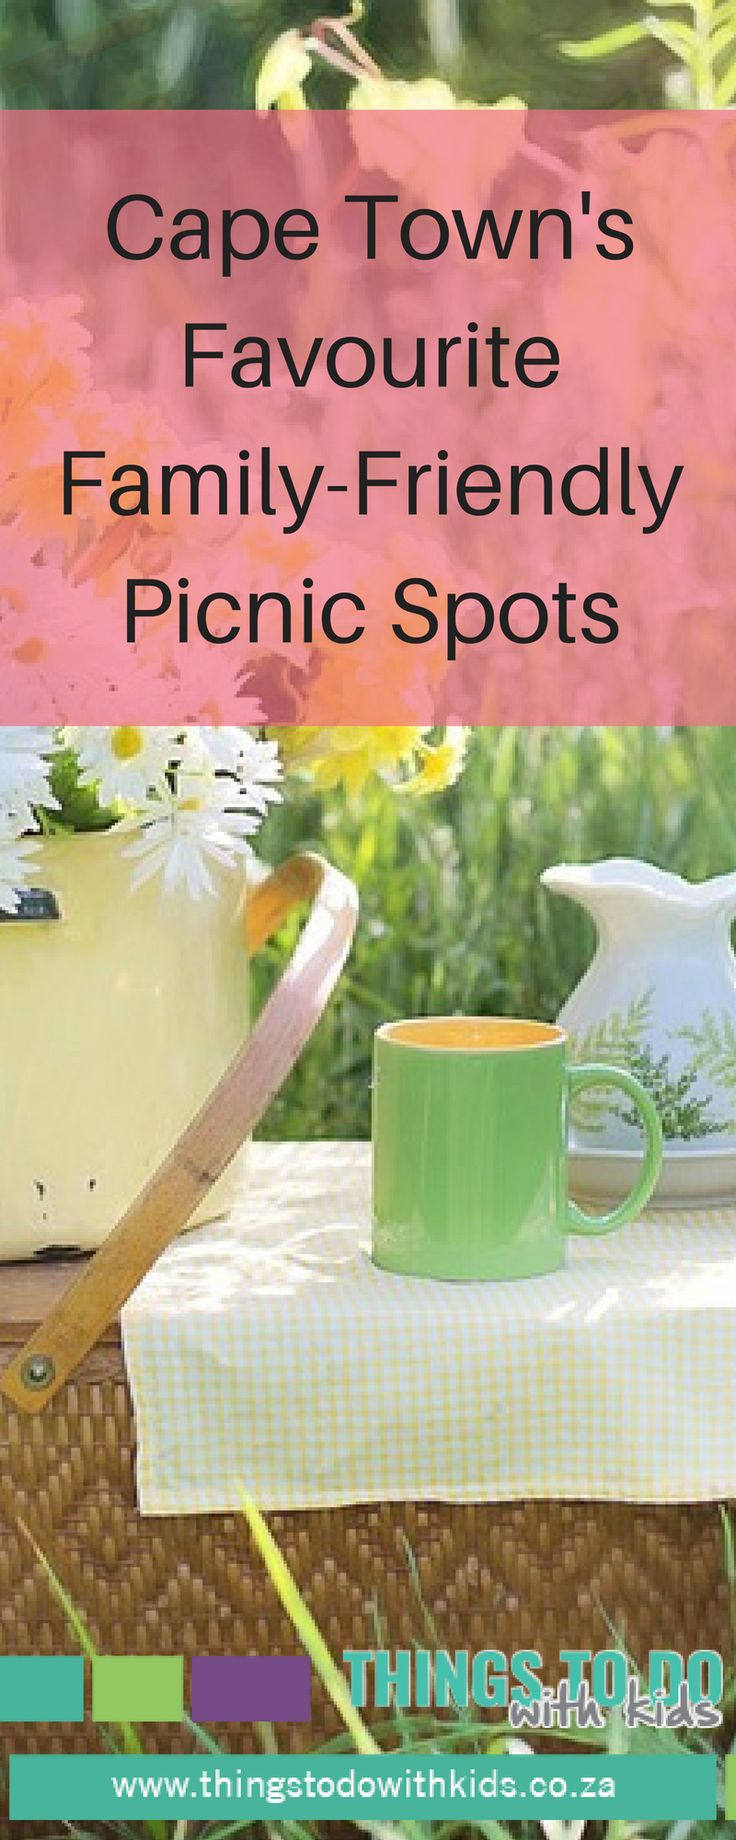 Picnic Spots Cape Town | Activities with Kids | Excursions & Activities | Family-friendly picnic spots Cape Town | Things to do with Kids